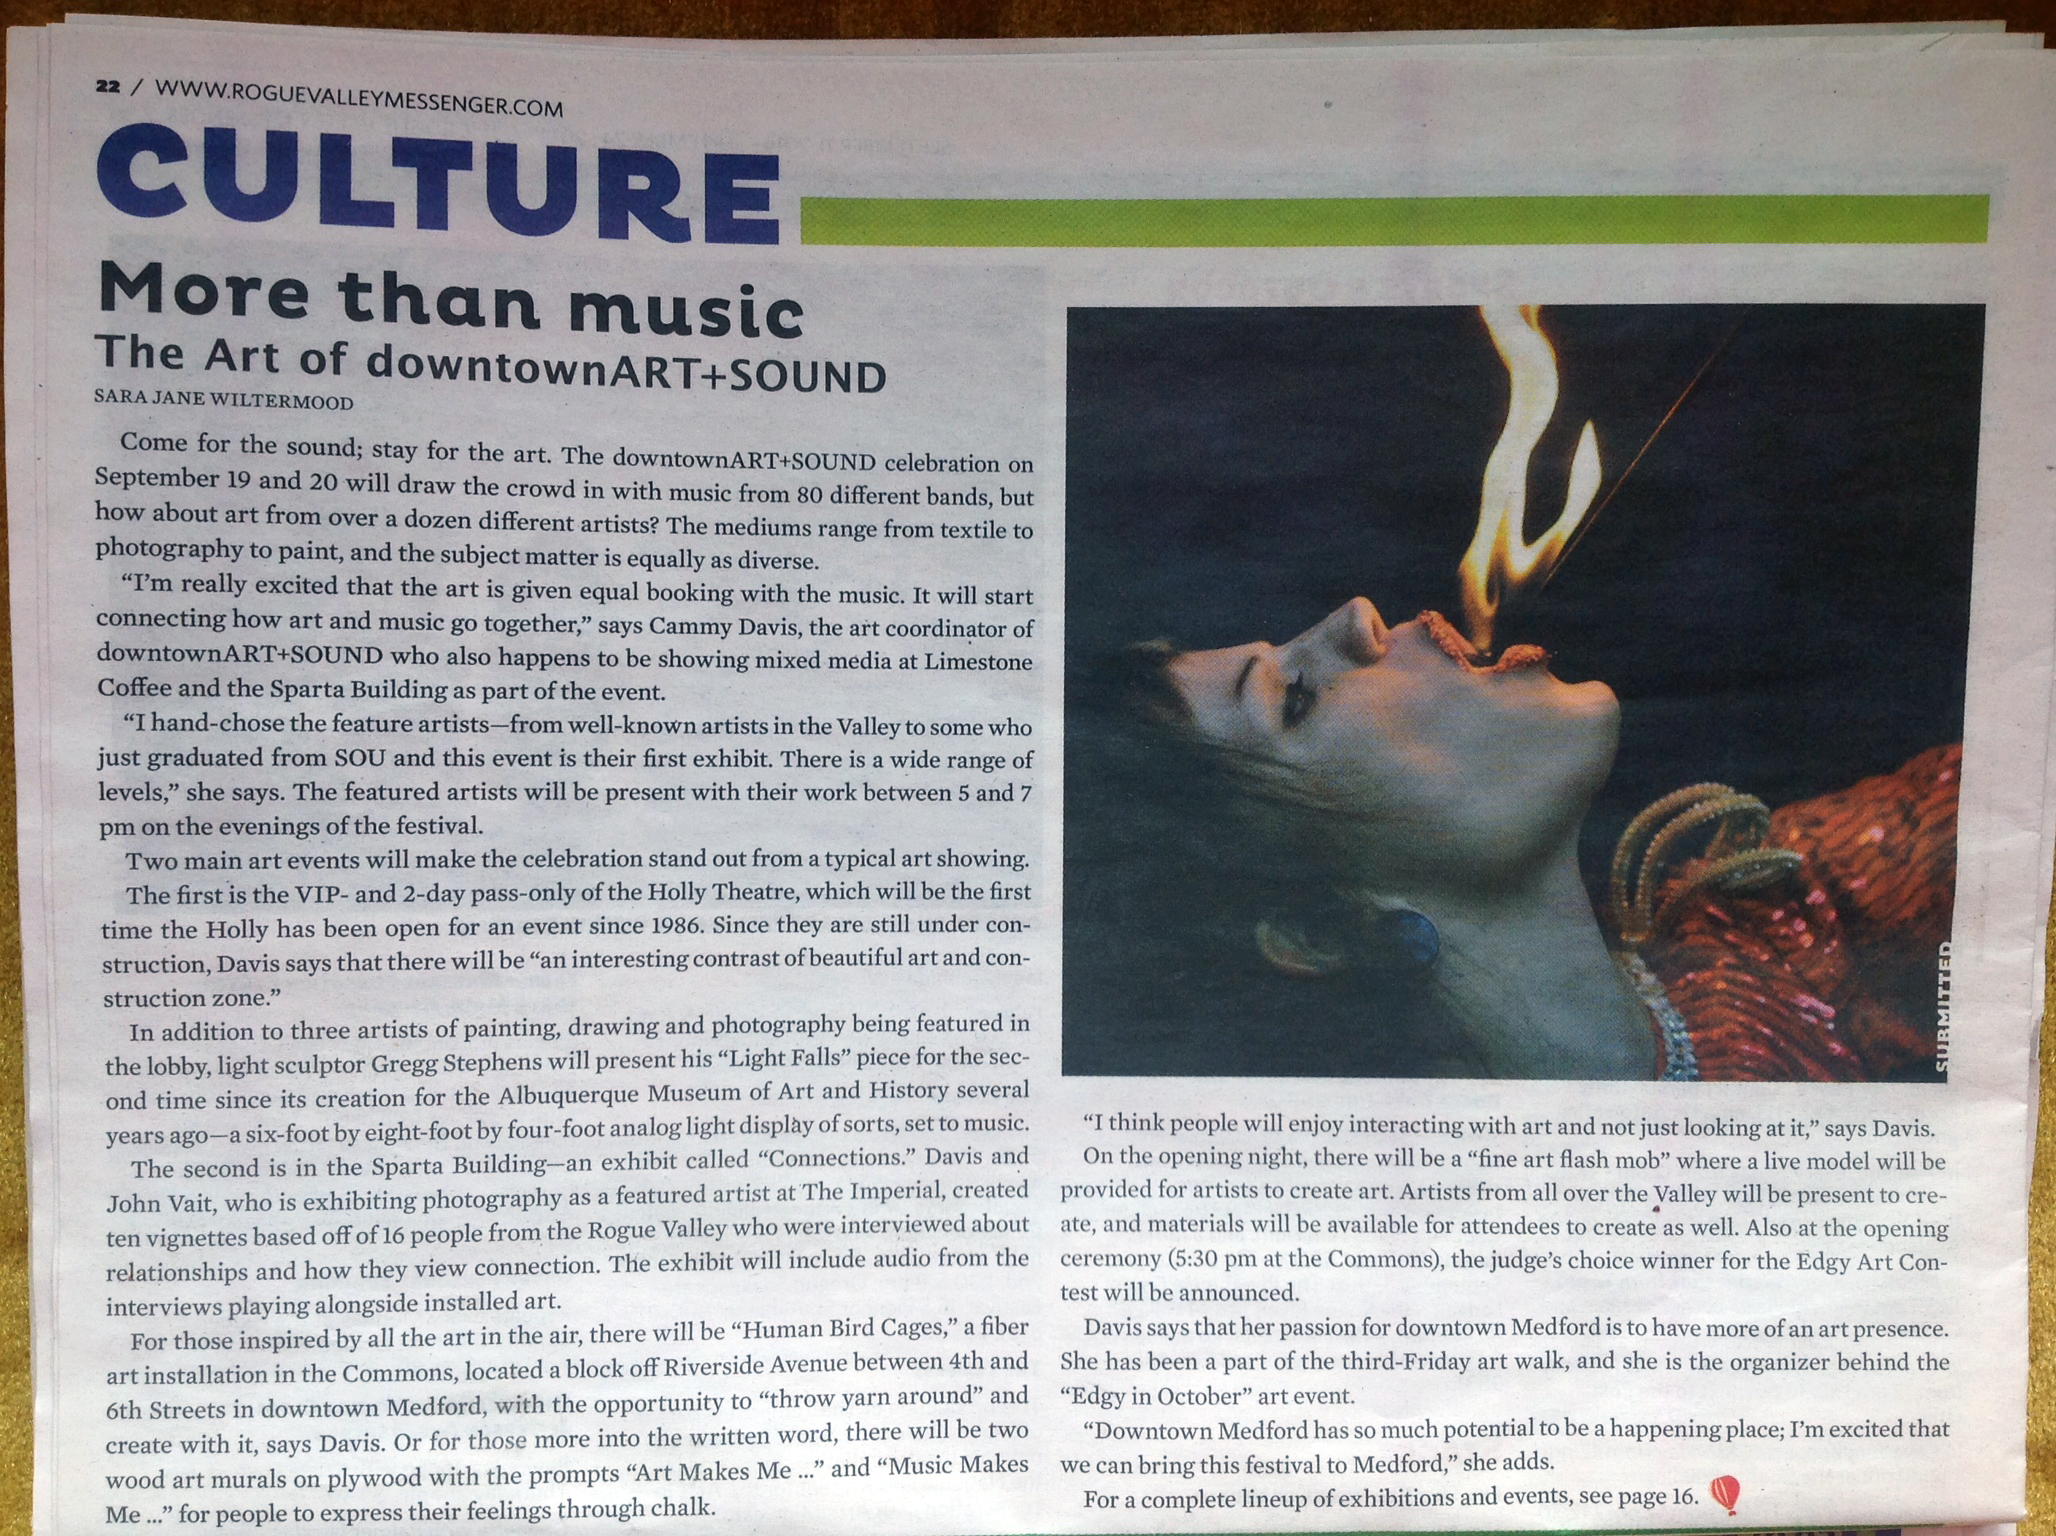 Rogue Valley Messenger article with Cammy Davis, Art Director, downtownART+SOUND